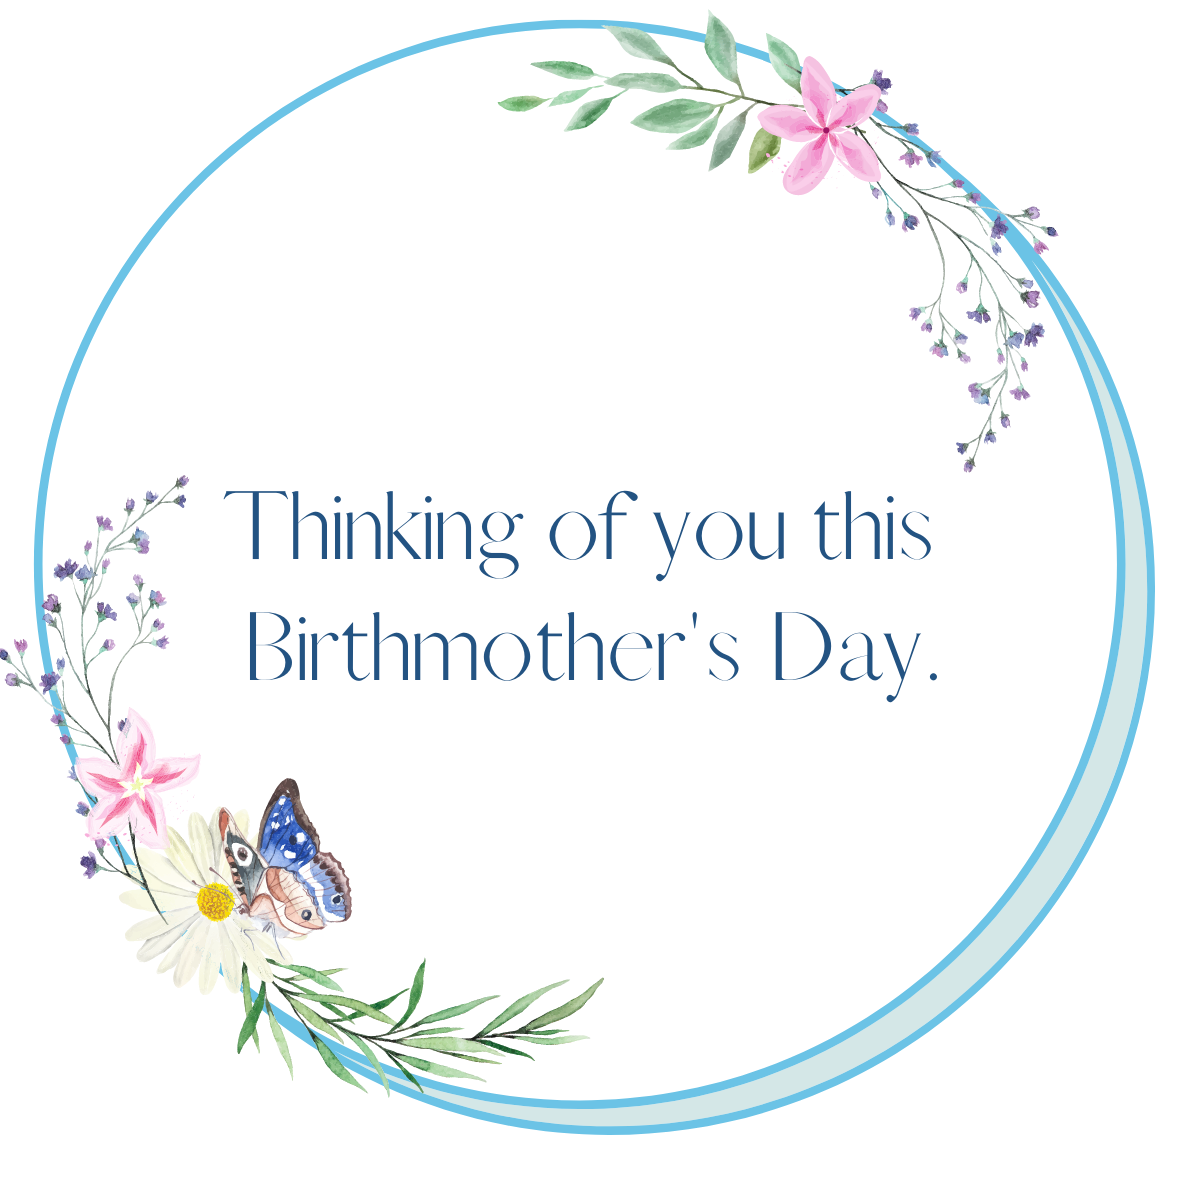 Shanyce H. shares her poetry on Birthmother's Day